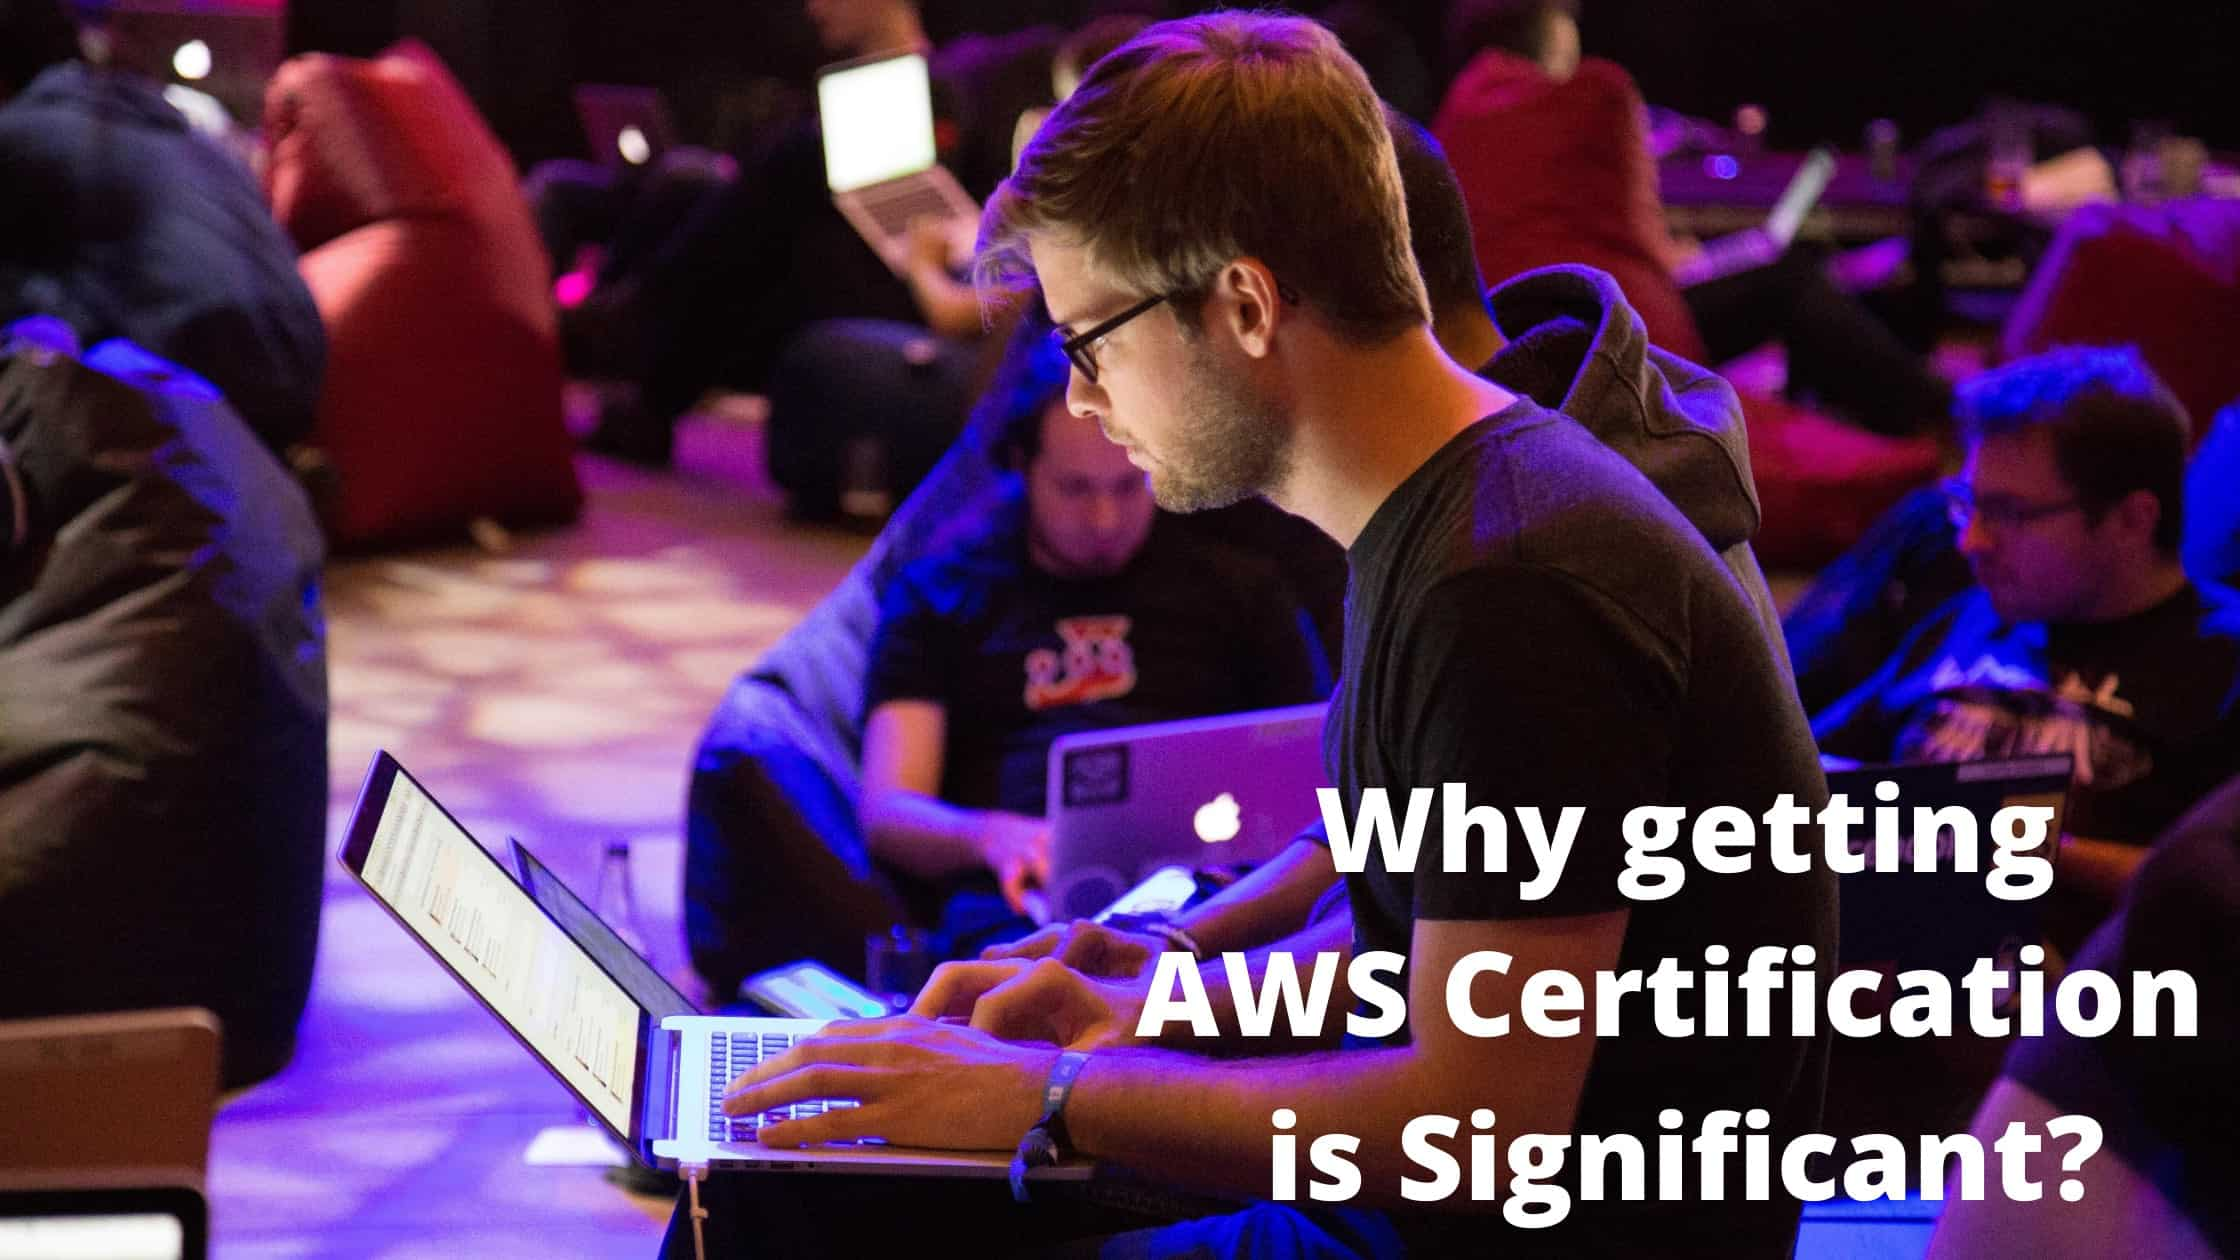 img-why-getting-aws-certification-is-significant.jpg